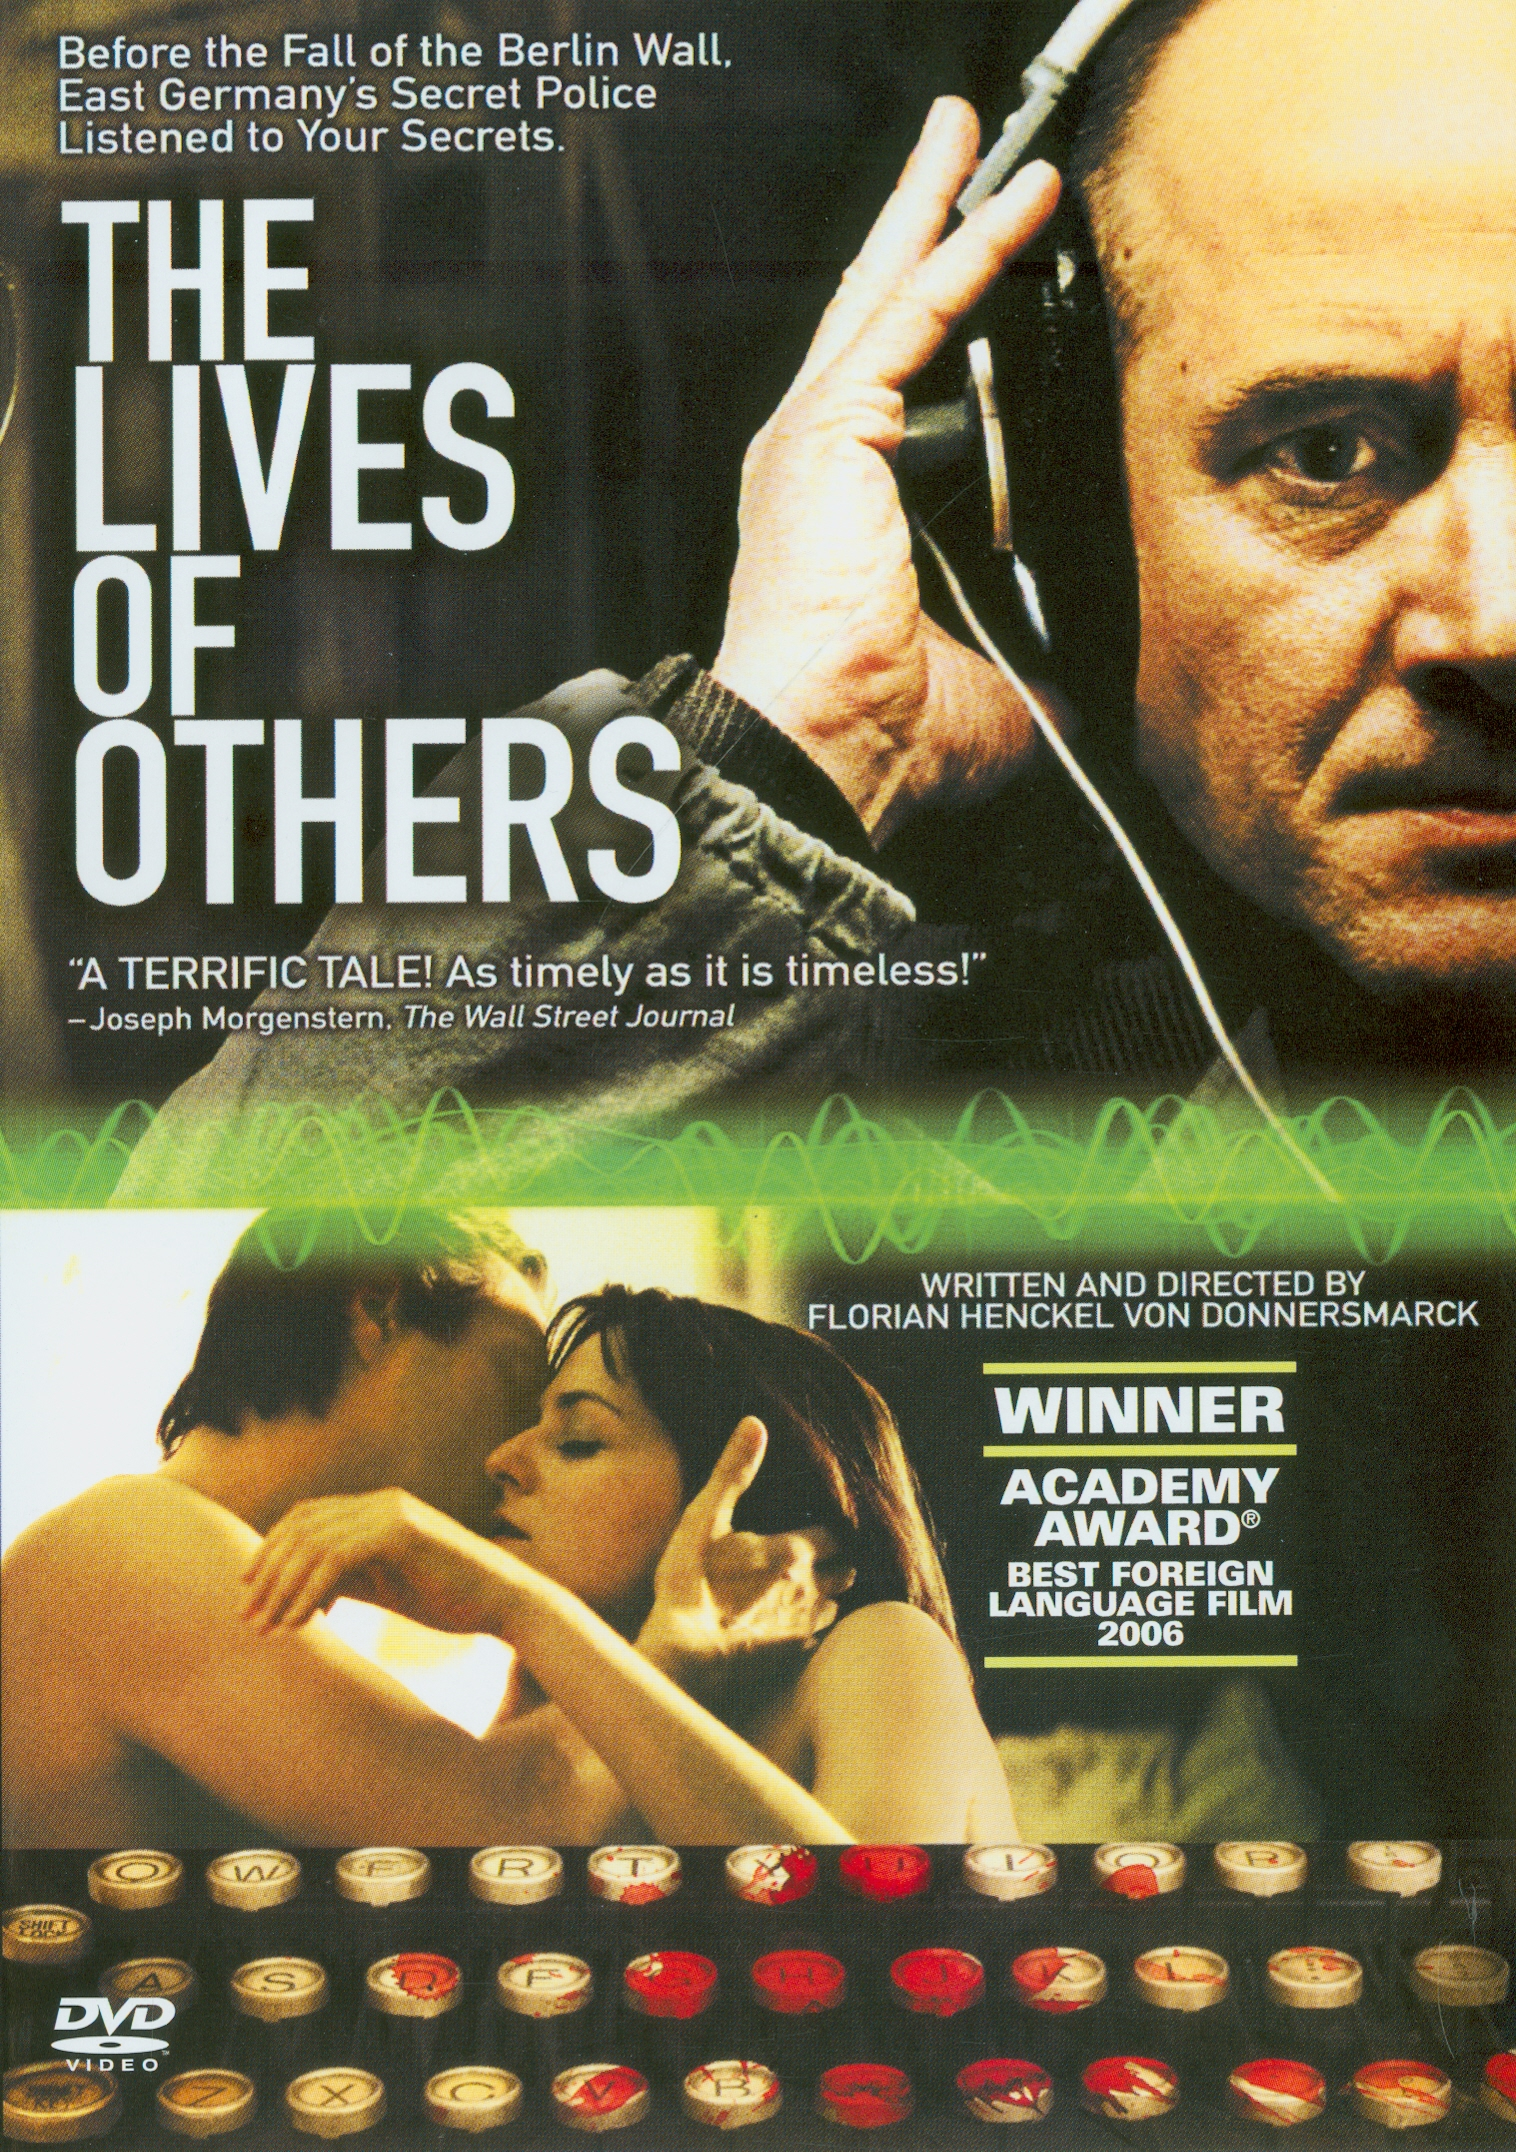 Lives of others[videorecording] /eine film von Florian Henckel von Donnersmarck ; eine Wiedemann & Berg Film produktion ; imVerleih der Buena Vista International ; in Coproduktionmit Bayerischer Rundfunk, Arte, Creado Film ; Coproduzenten, Dirk Hamm, Florian Henckel von Donnersmarck; Produzenten, Quirin Berg, Max Wiedemann ; Buch und Regie,Florian Henckel von Donnersmarck